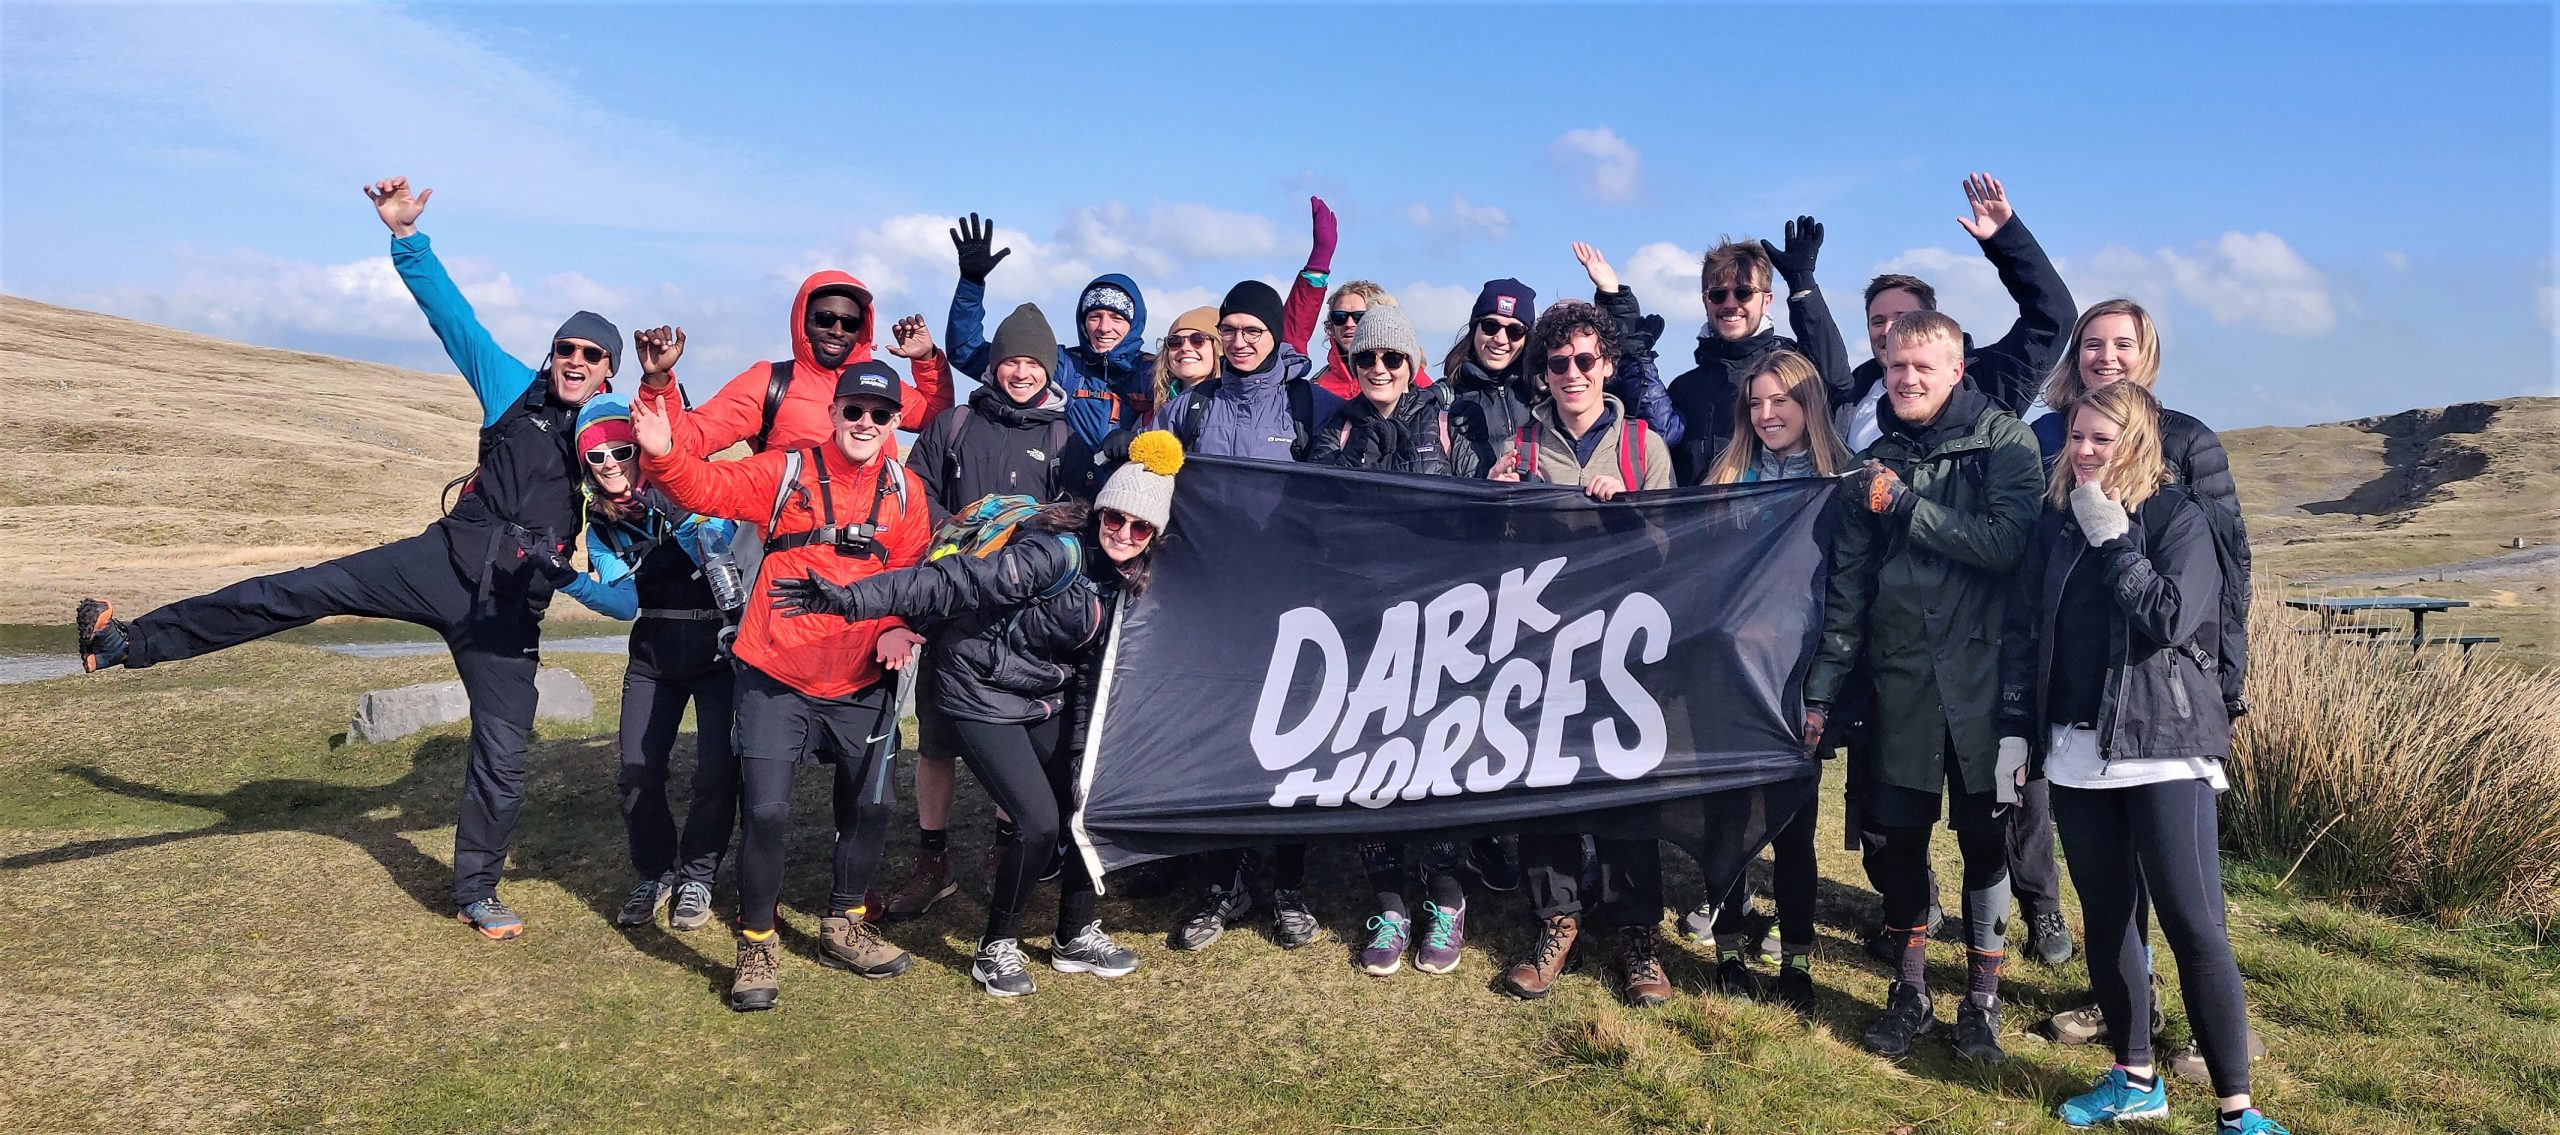 Dark Horses team on an adventure event